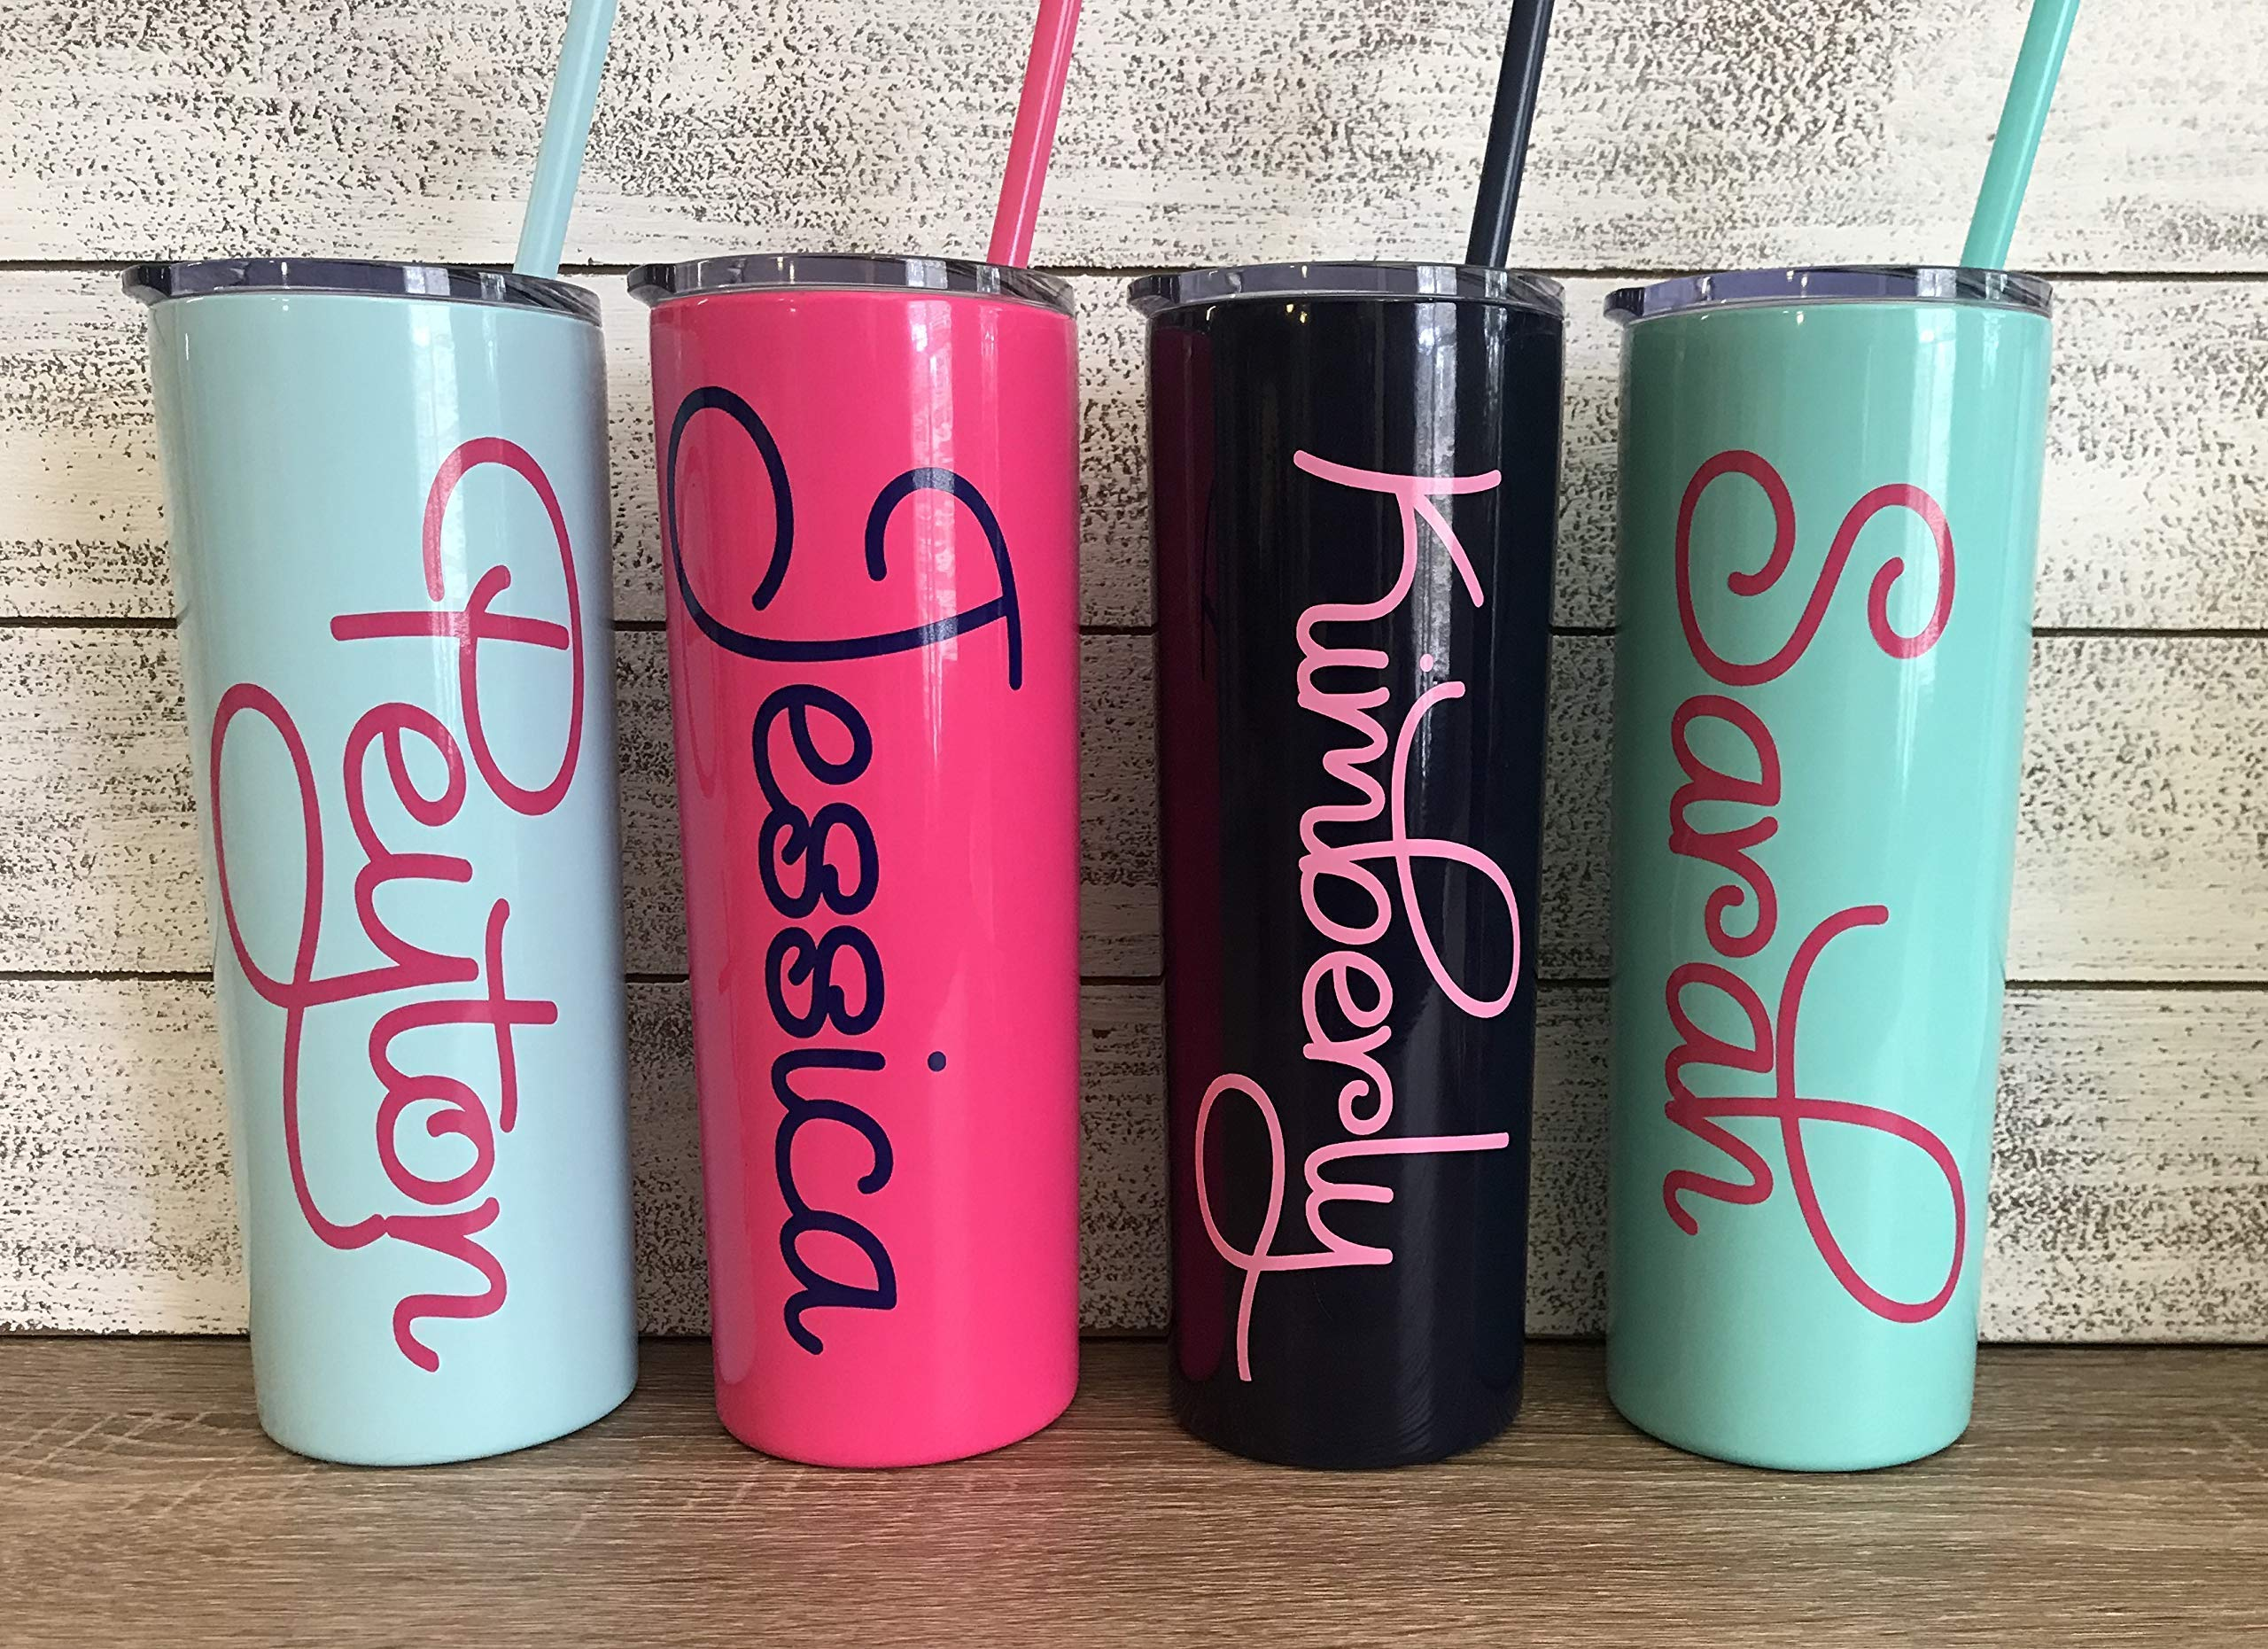 Bachelorette Includes Straw and Lid Bridal Party Gifts Bridesmaid Personalized 22 oz Stainless Steel Tumbler with Custom Monogram Vinyl Decal by Avito